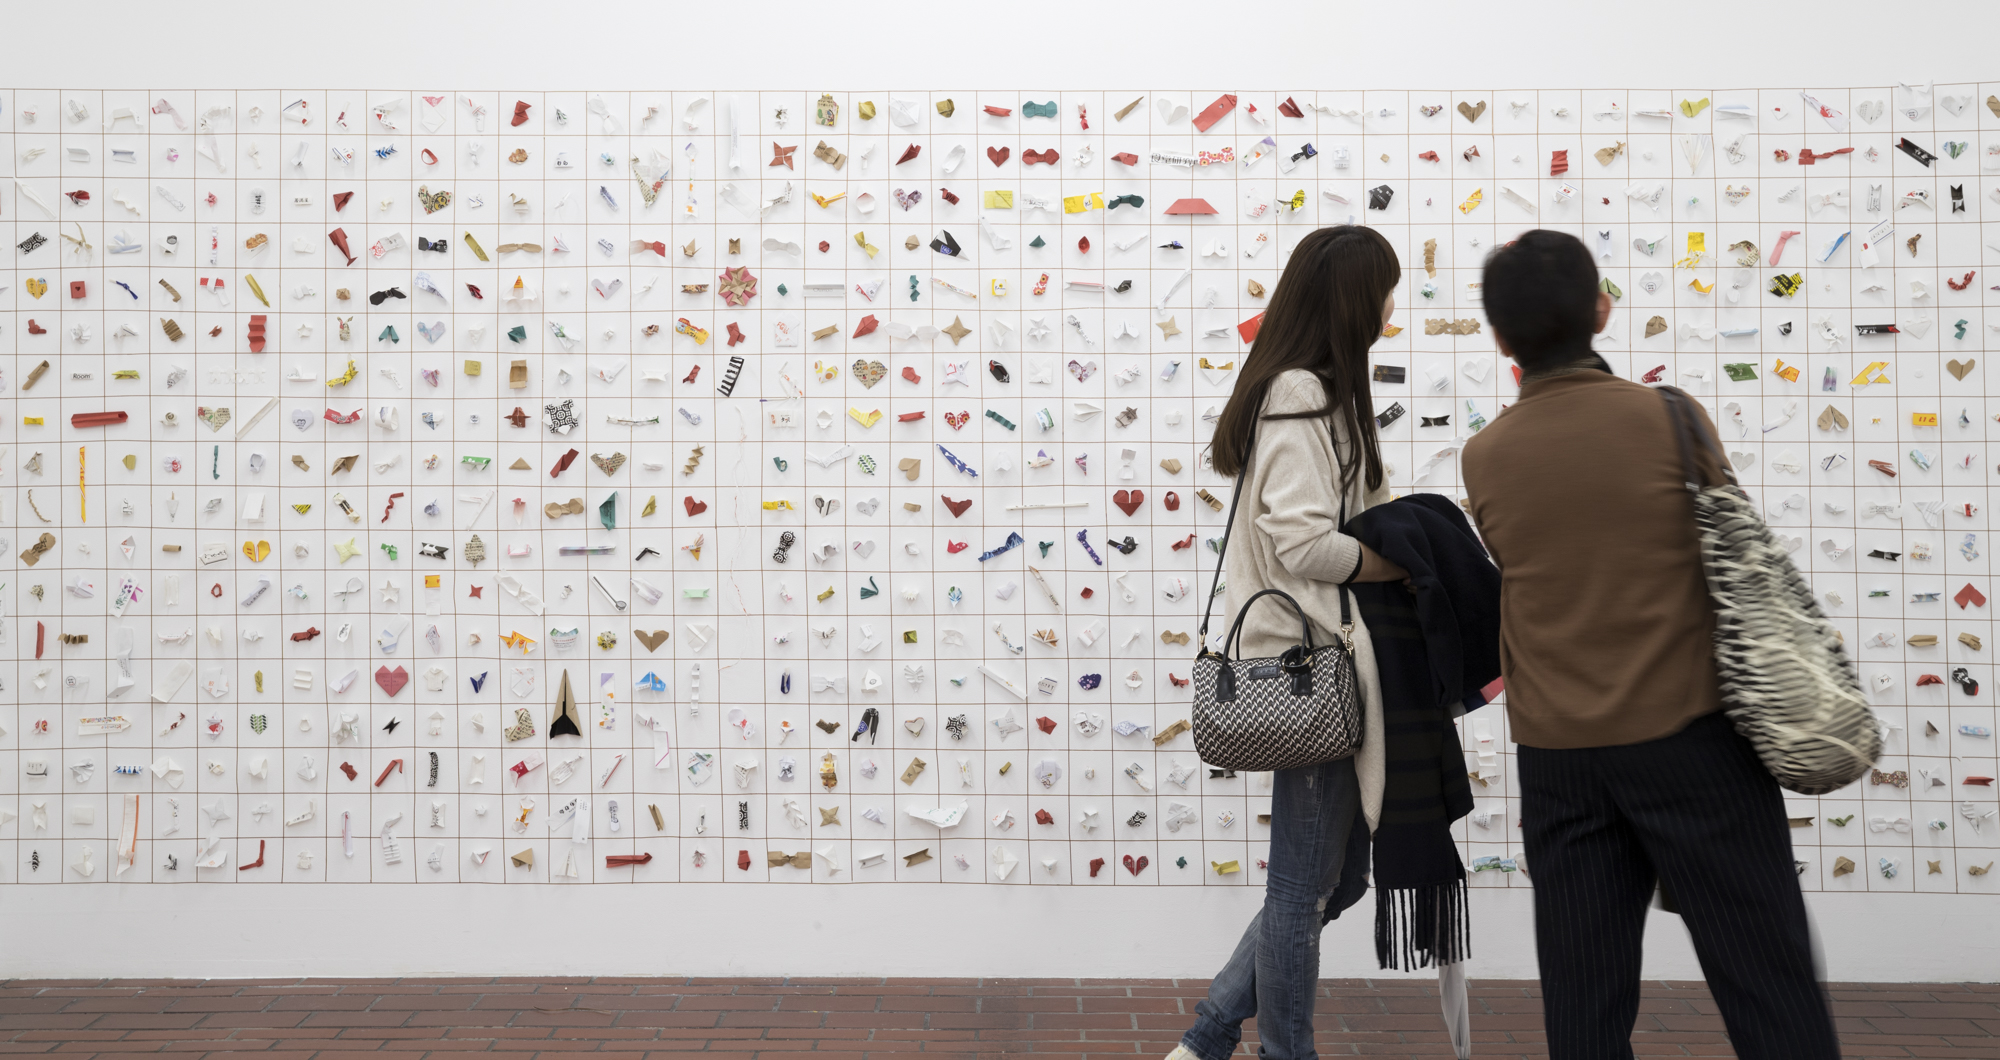 The Japanese Tip exhibition featuring thousands of chopstick wrappers.